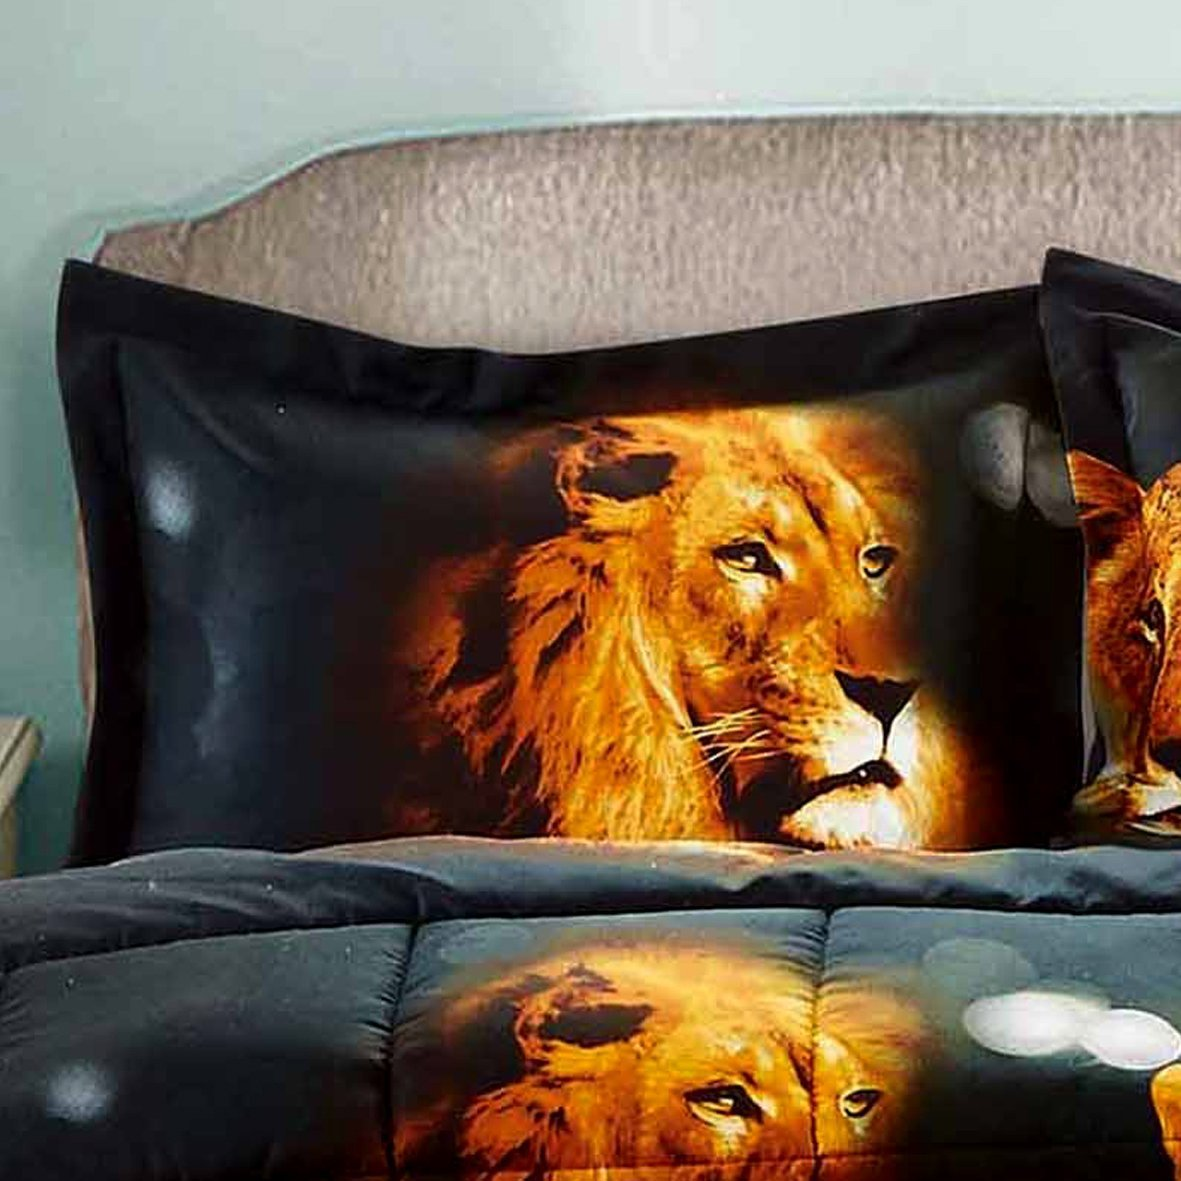 HUAJIE 2 Piece Set Beautiful Soft 3d Print Vivid Animals Pattern Box Stitched Comforter Set (1 Comforter,1 Pillowcase) (Twin, Tiger Lion) by HUAJIE (Image #3)